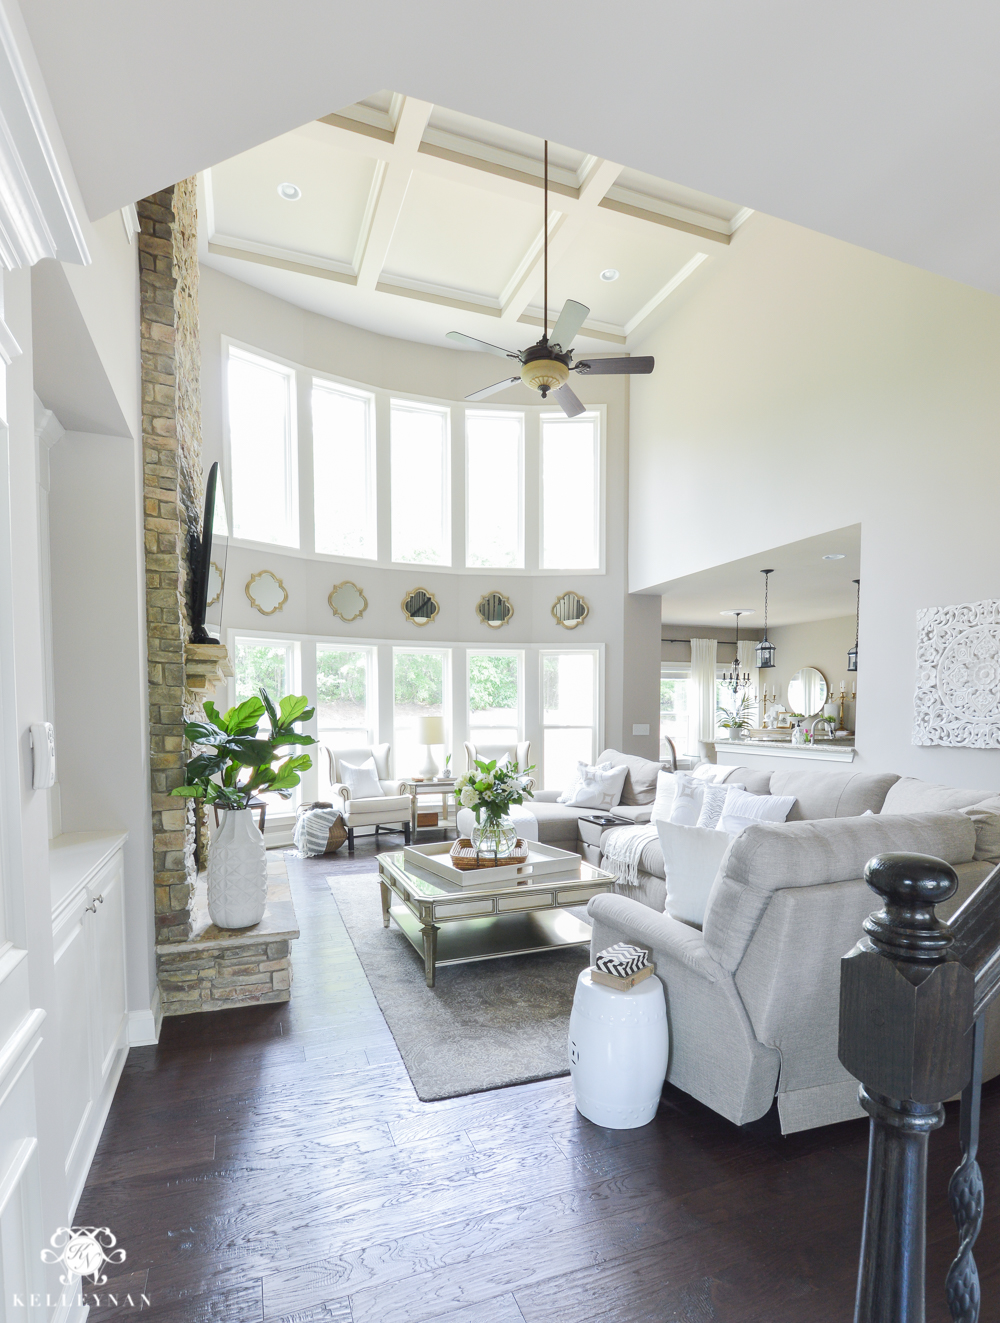 Shades of Summer Home Tour with Neutrals and Naturals-two story great room in sherwin williams versatile gray with bow of windows